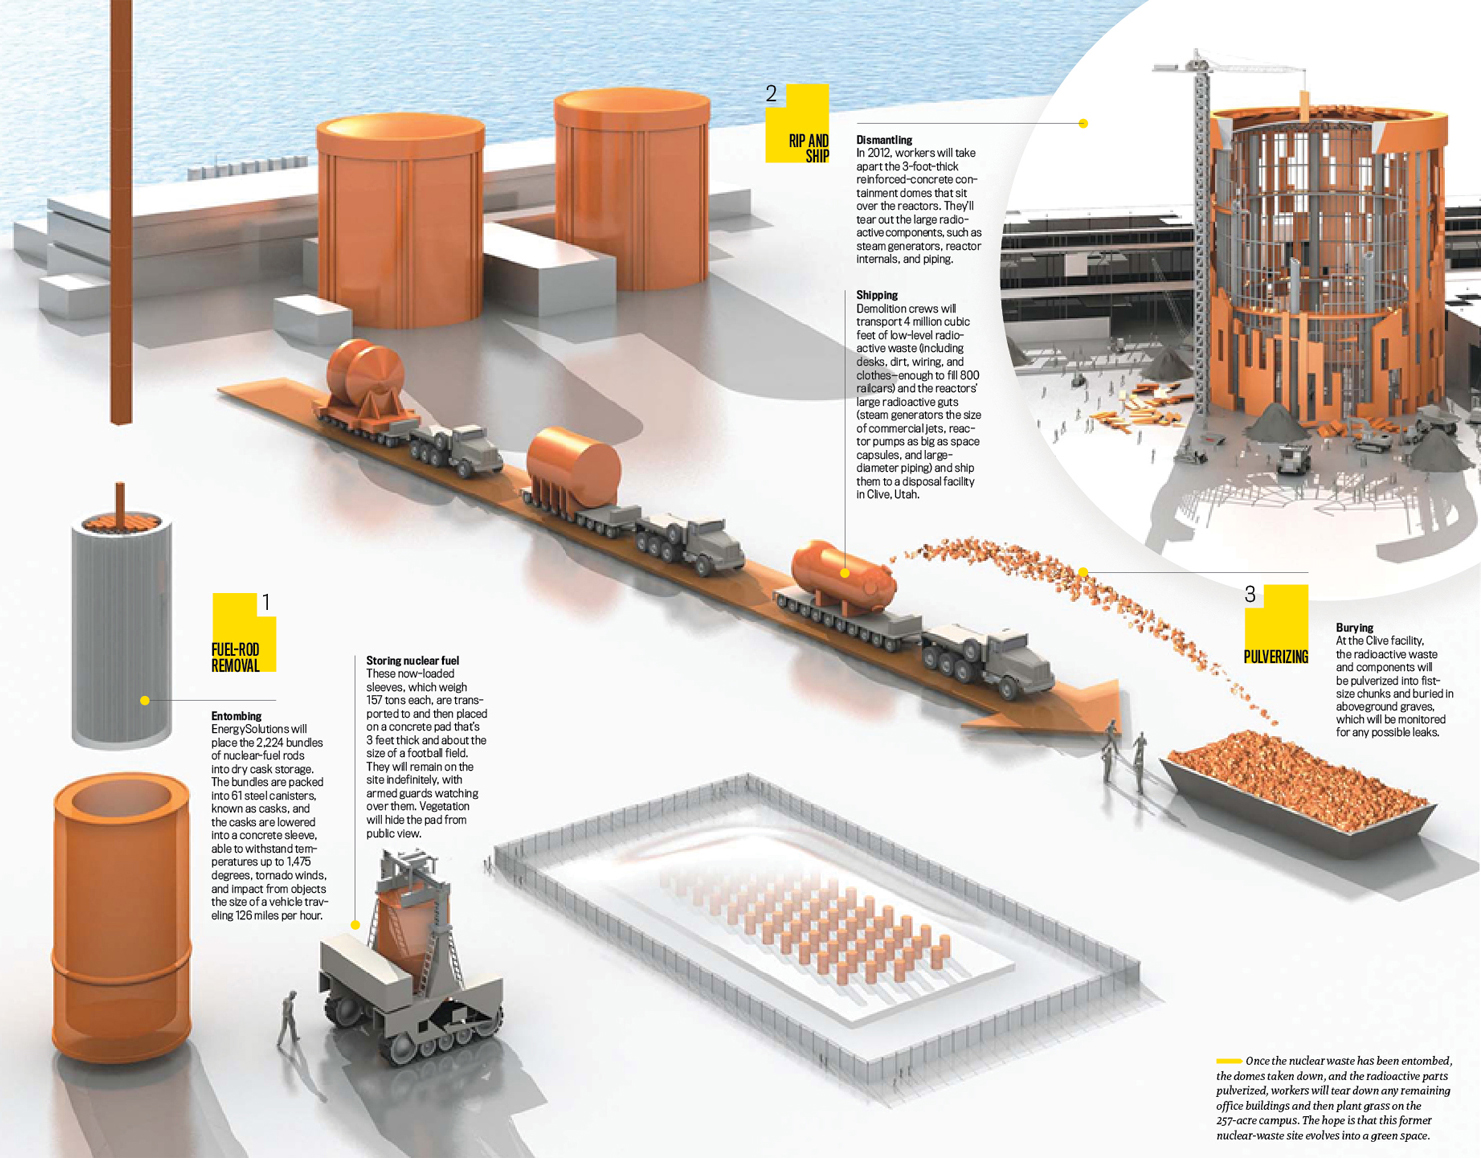 Dismantling a Nuclear Reactor